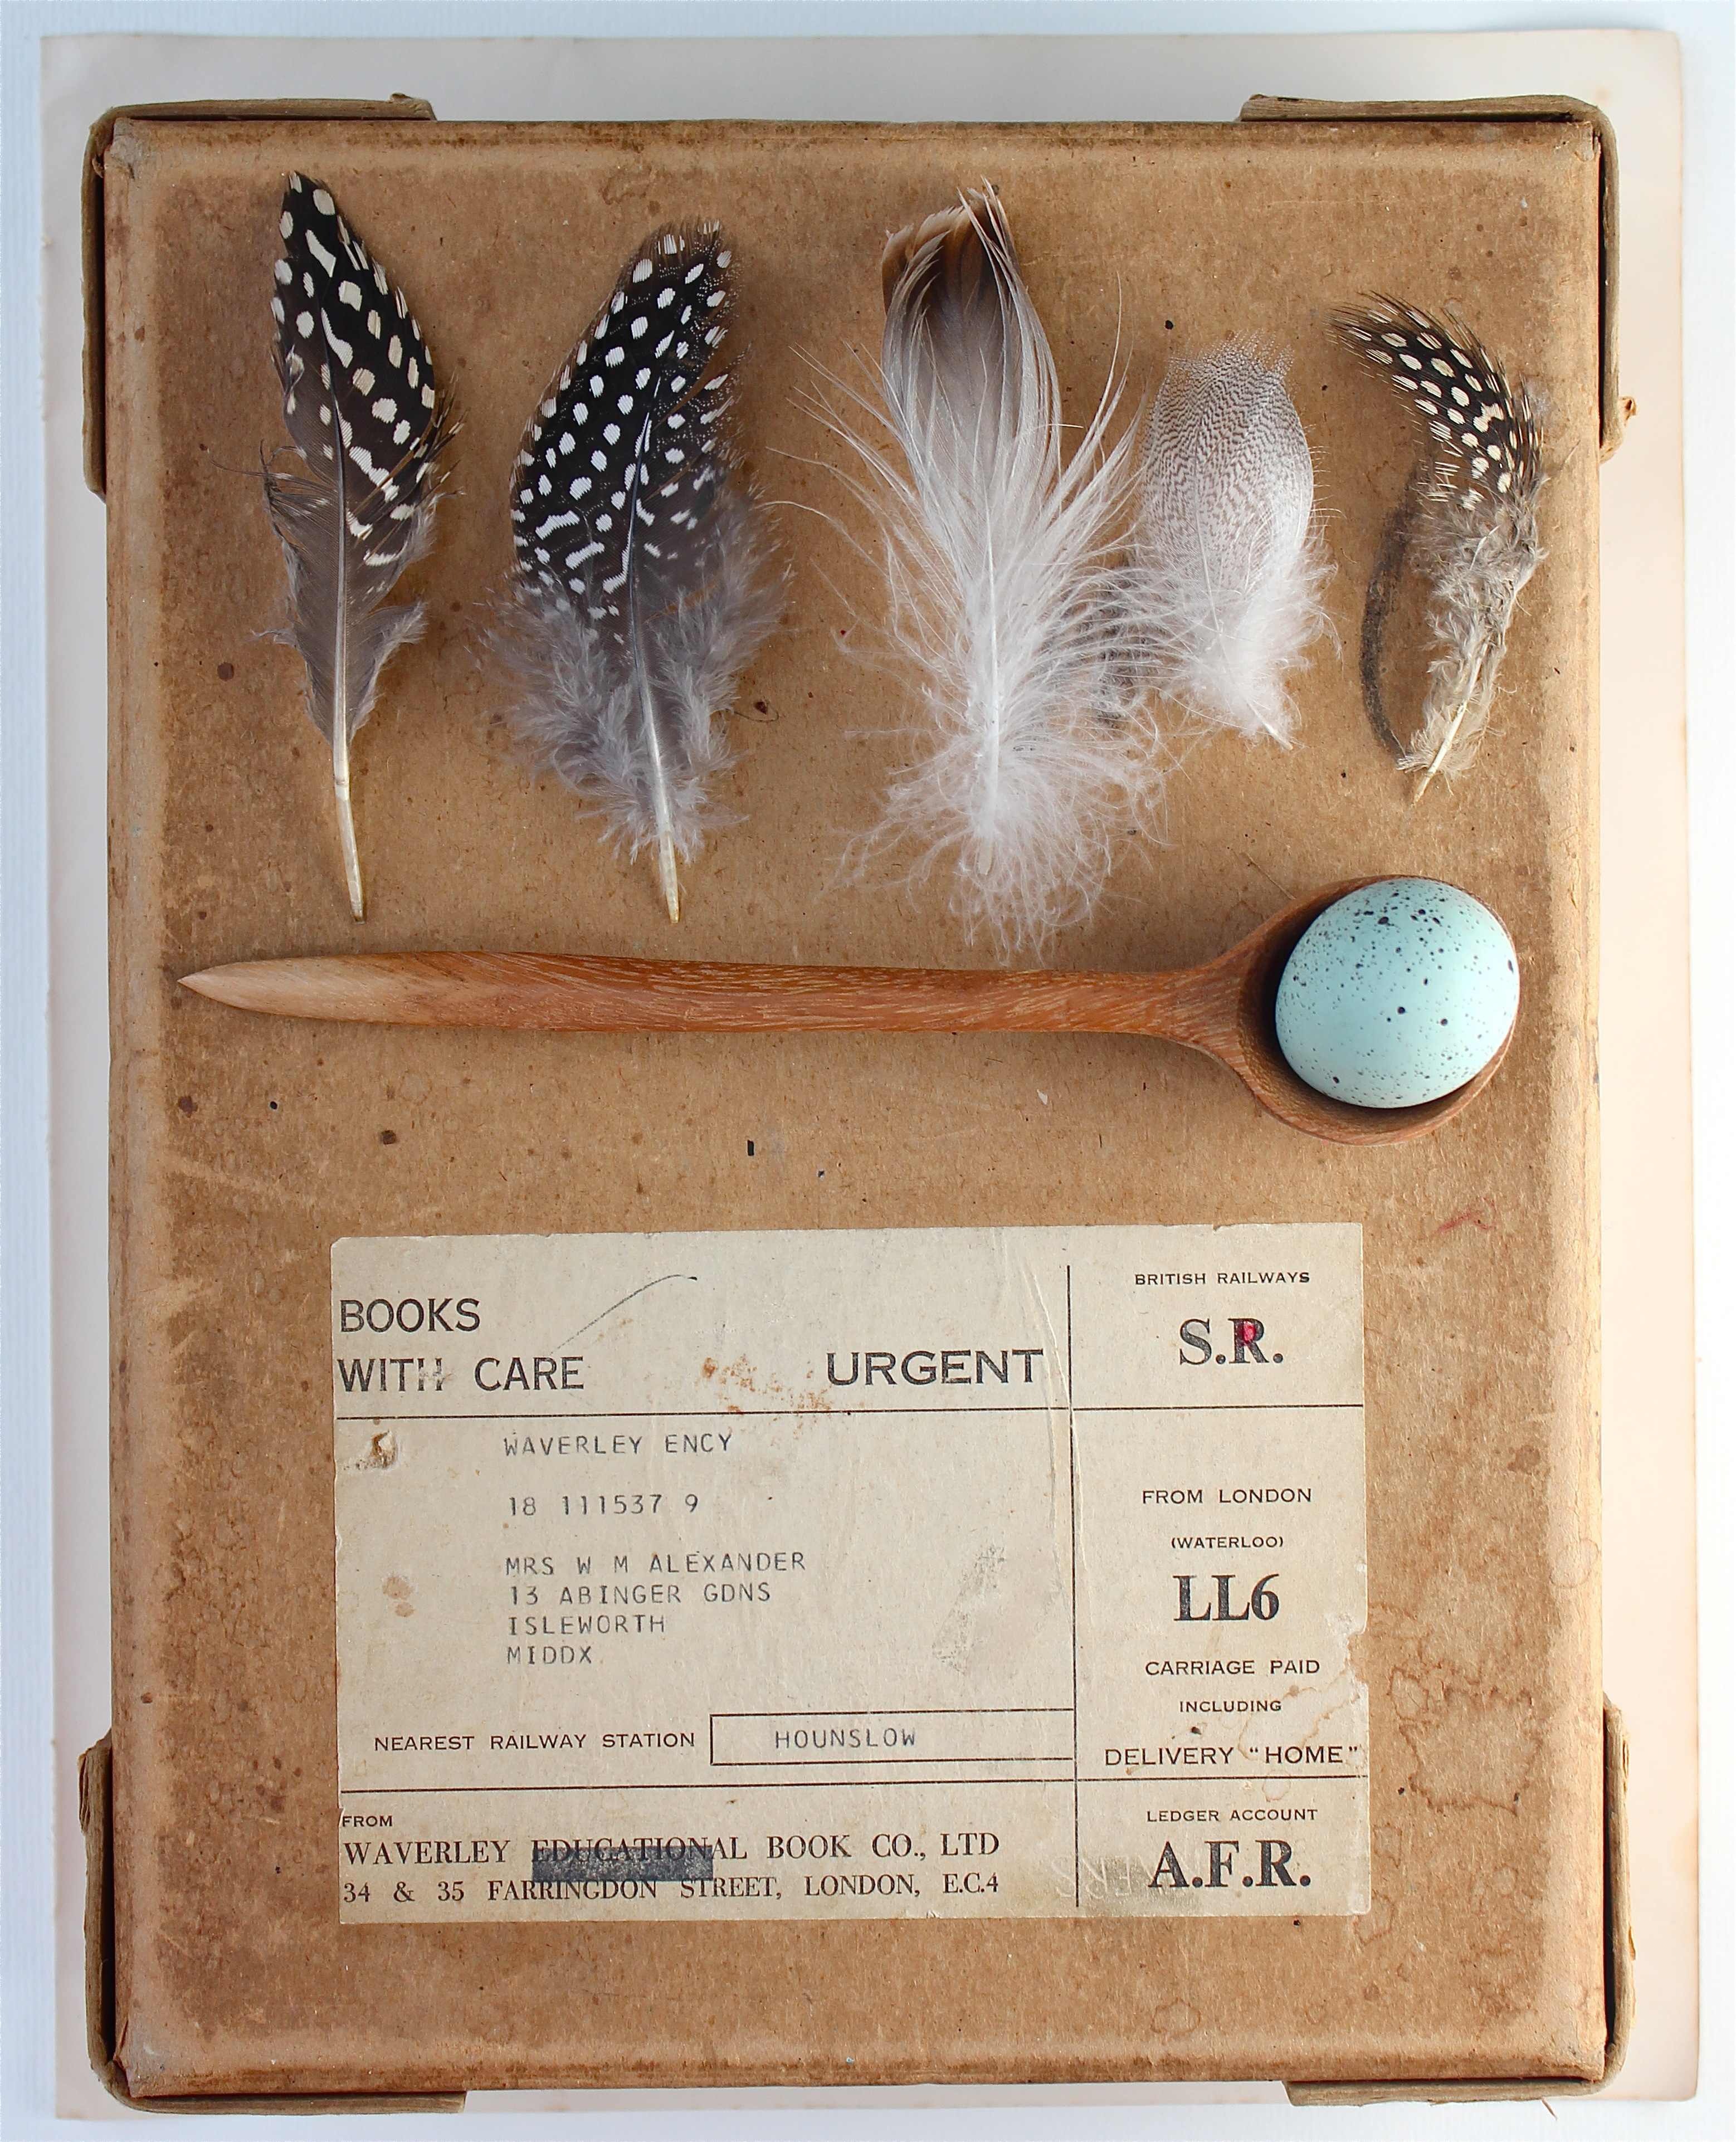 DIY feathers